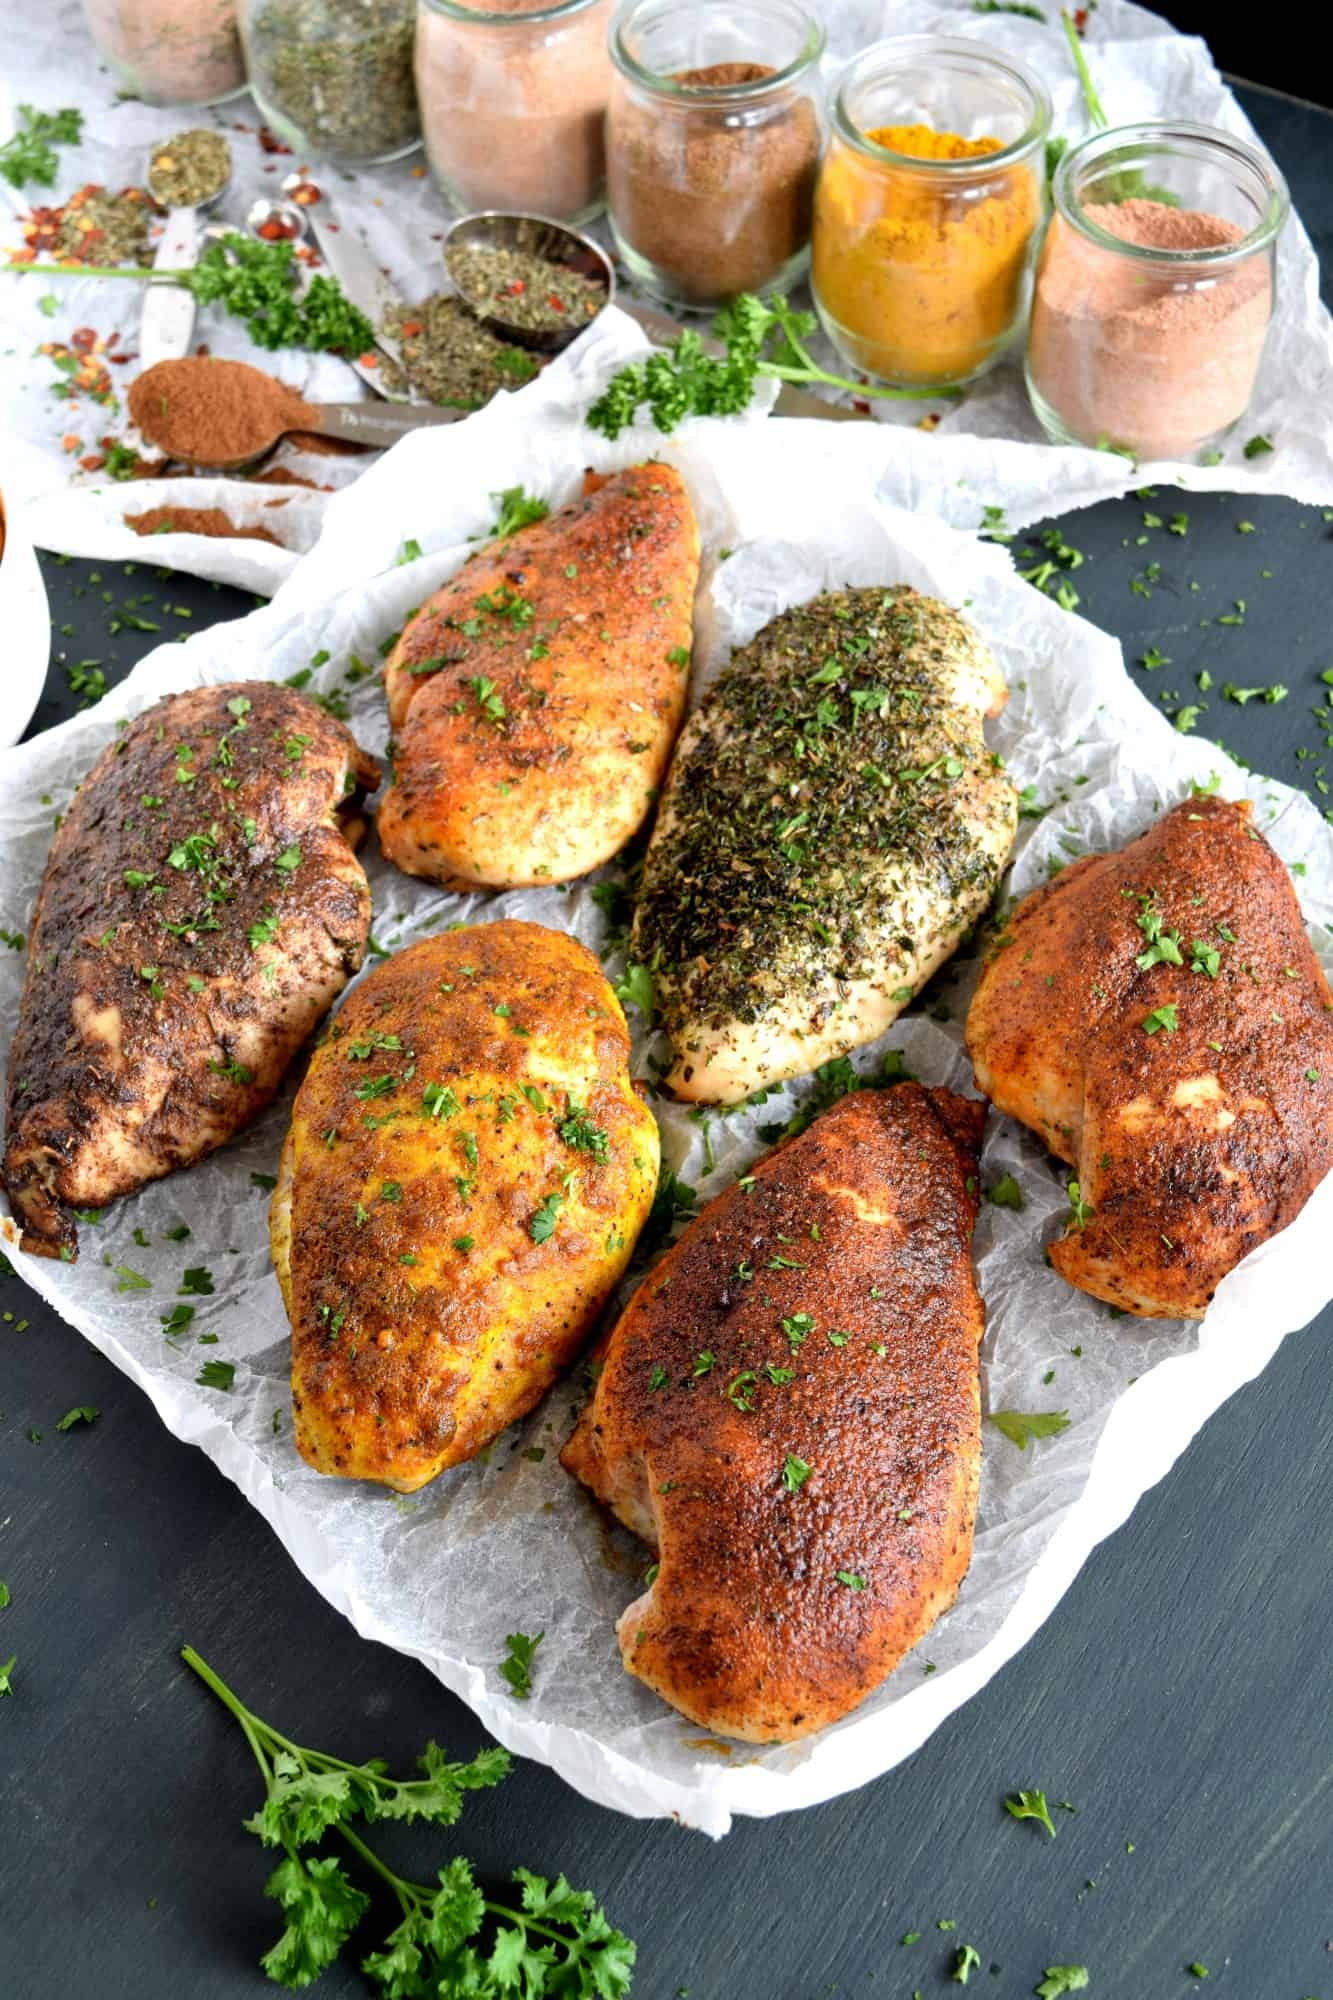 6 Seasoning Blends For Baked Chicken